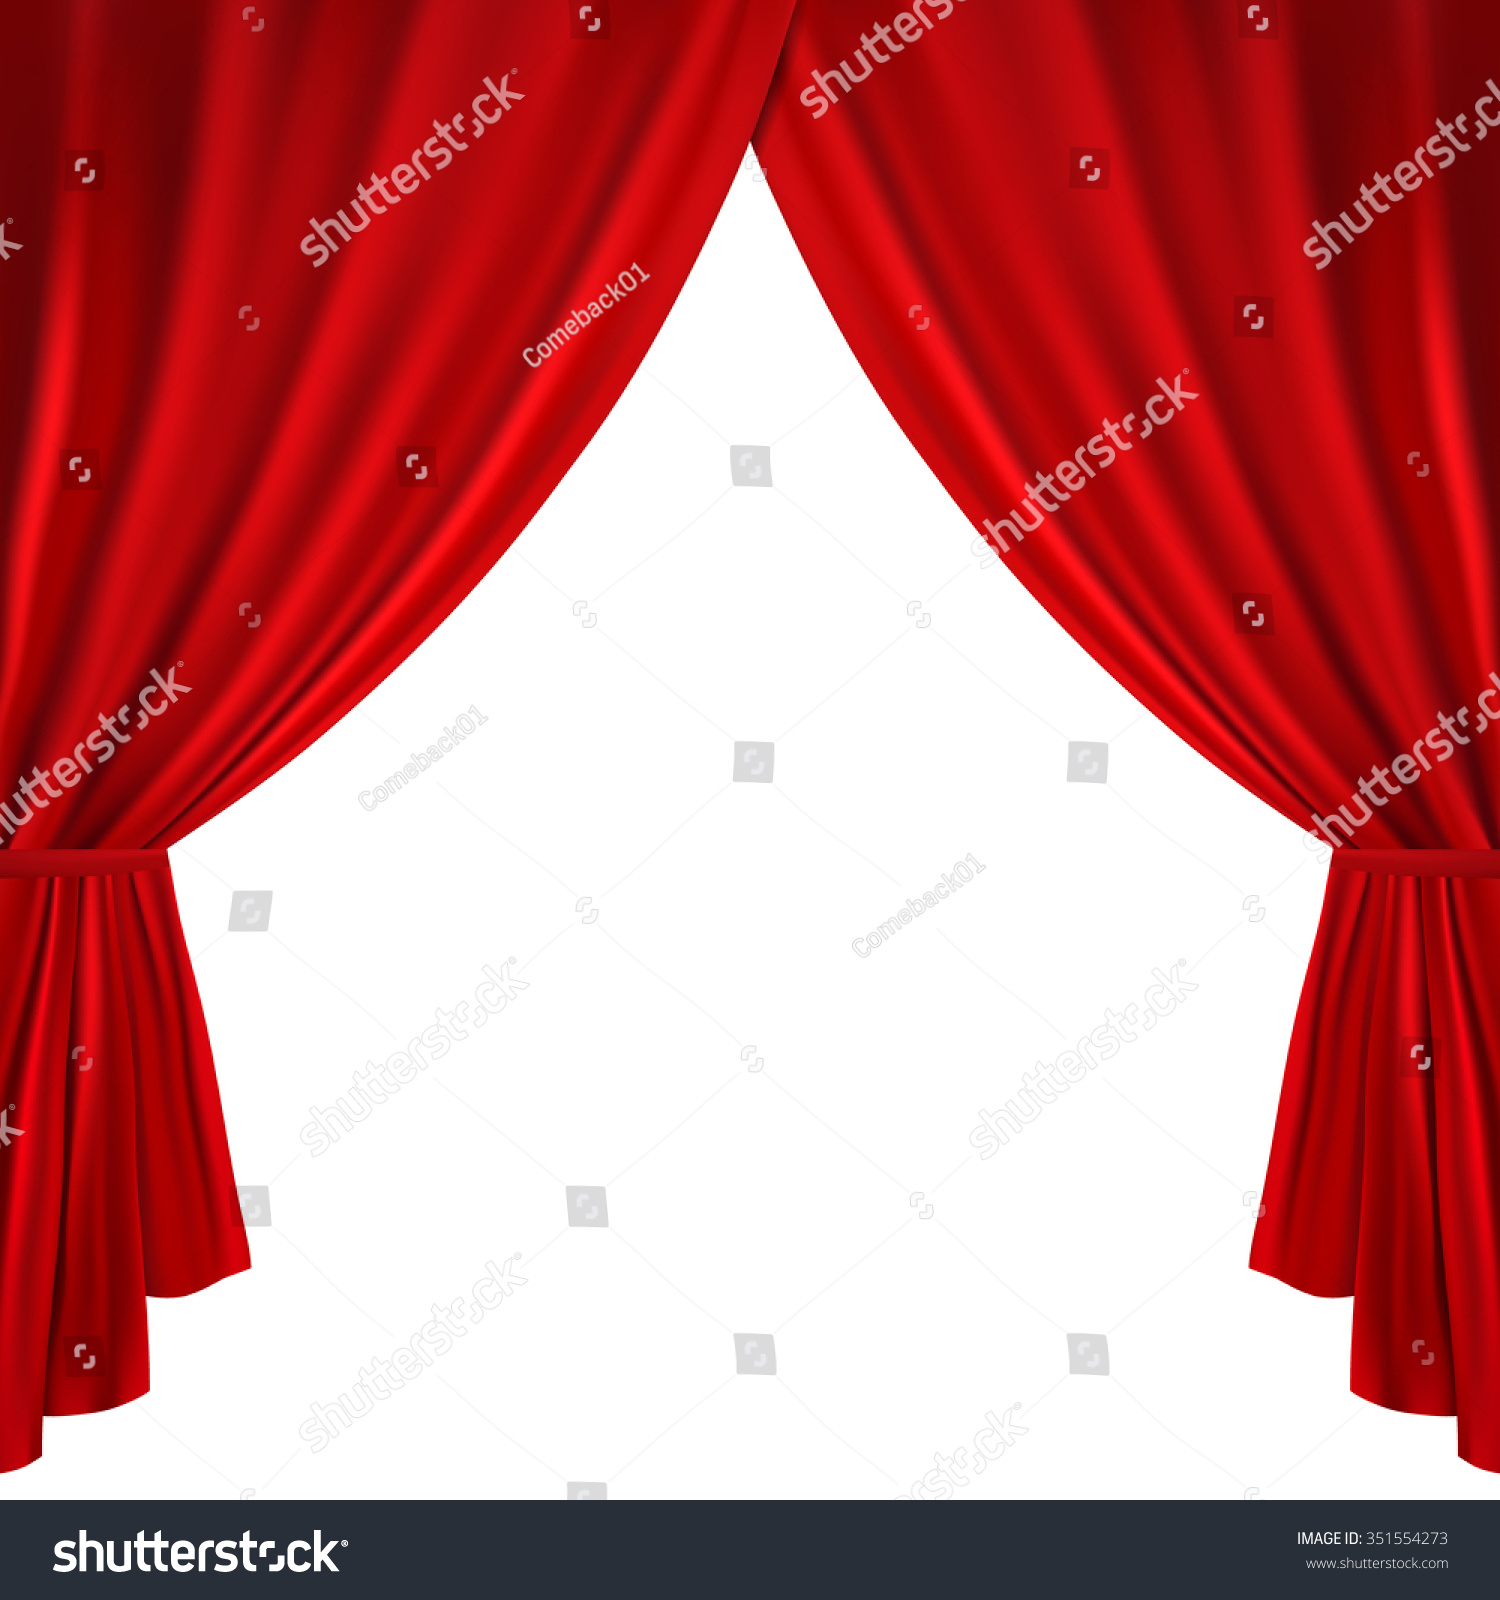 Red stage curtain with lights - Stage Curtains Background Red Theater Curtain On A White Background